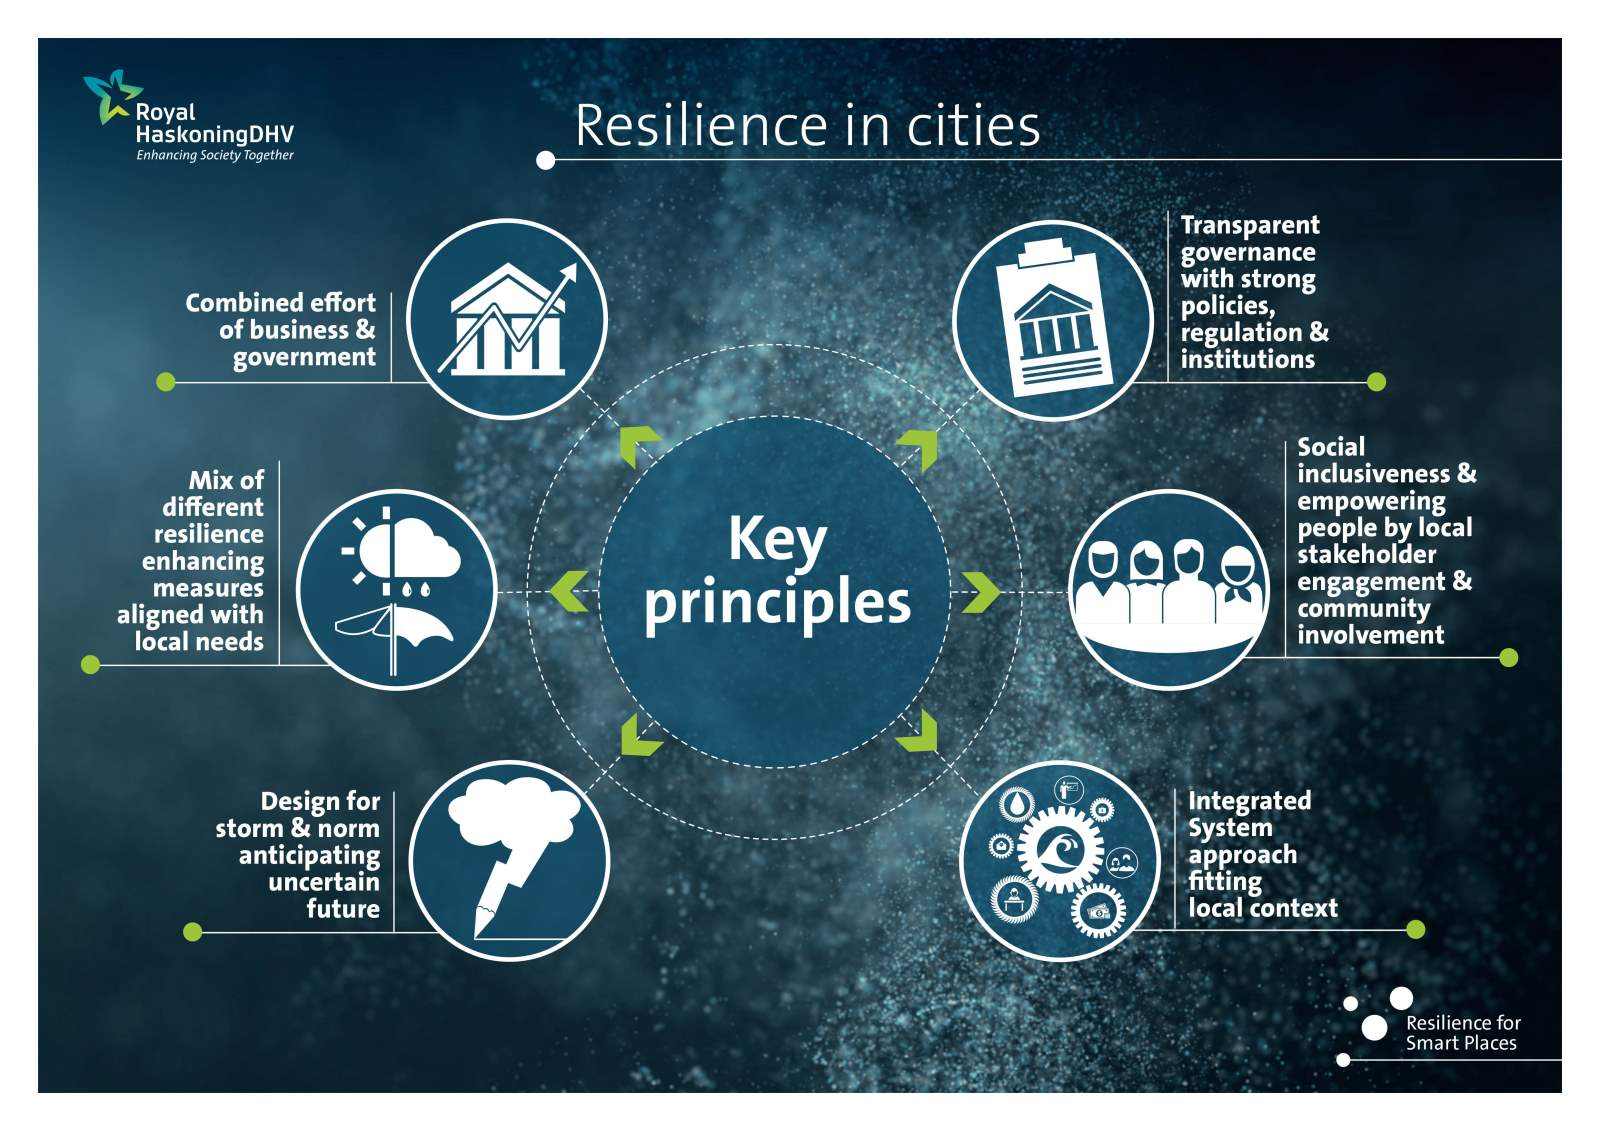 Resilience in cities, Key principles